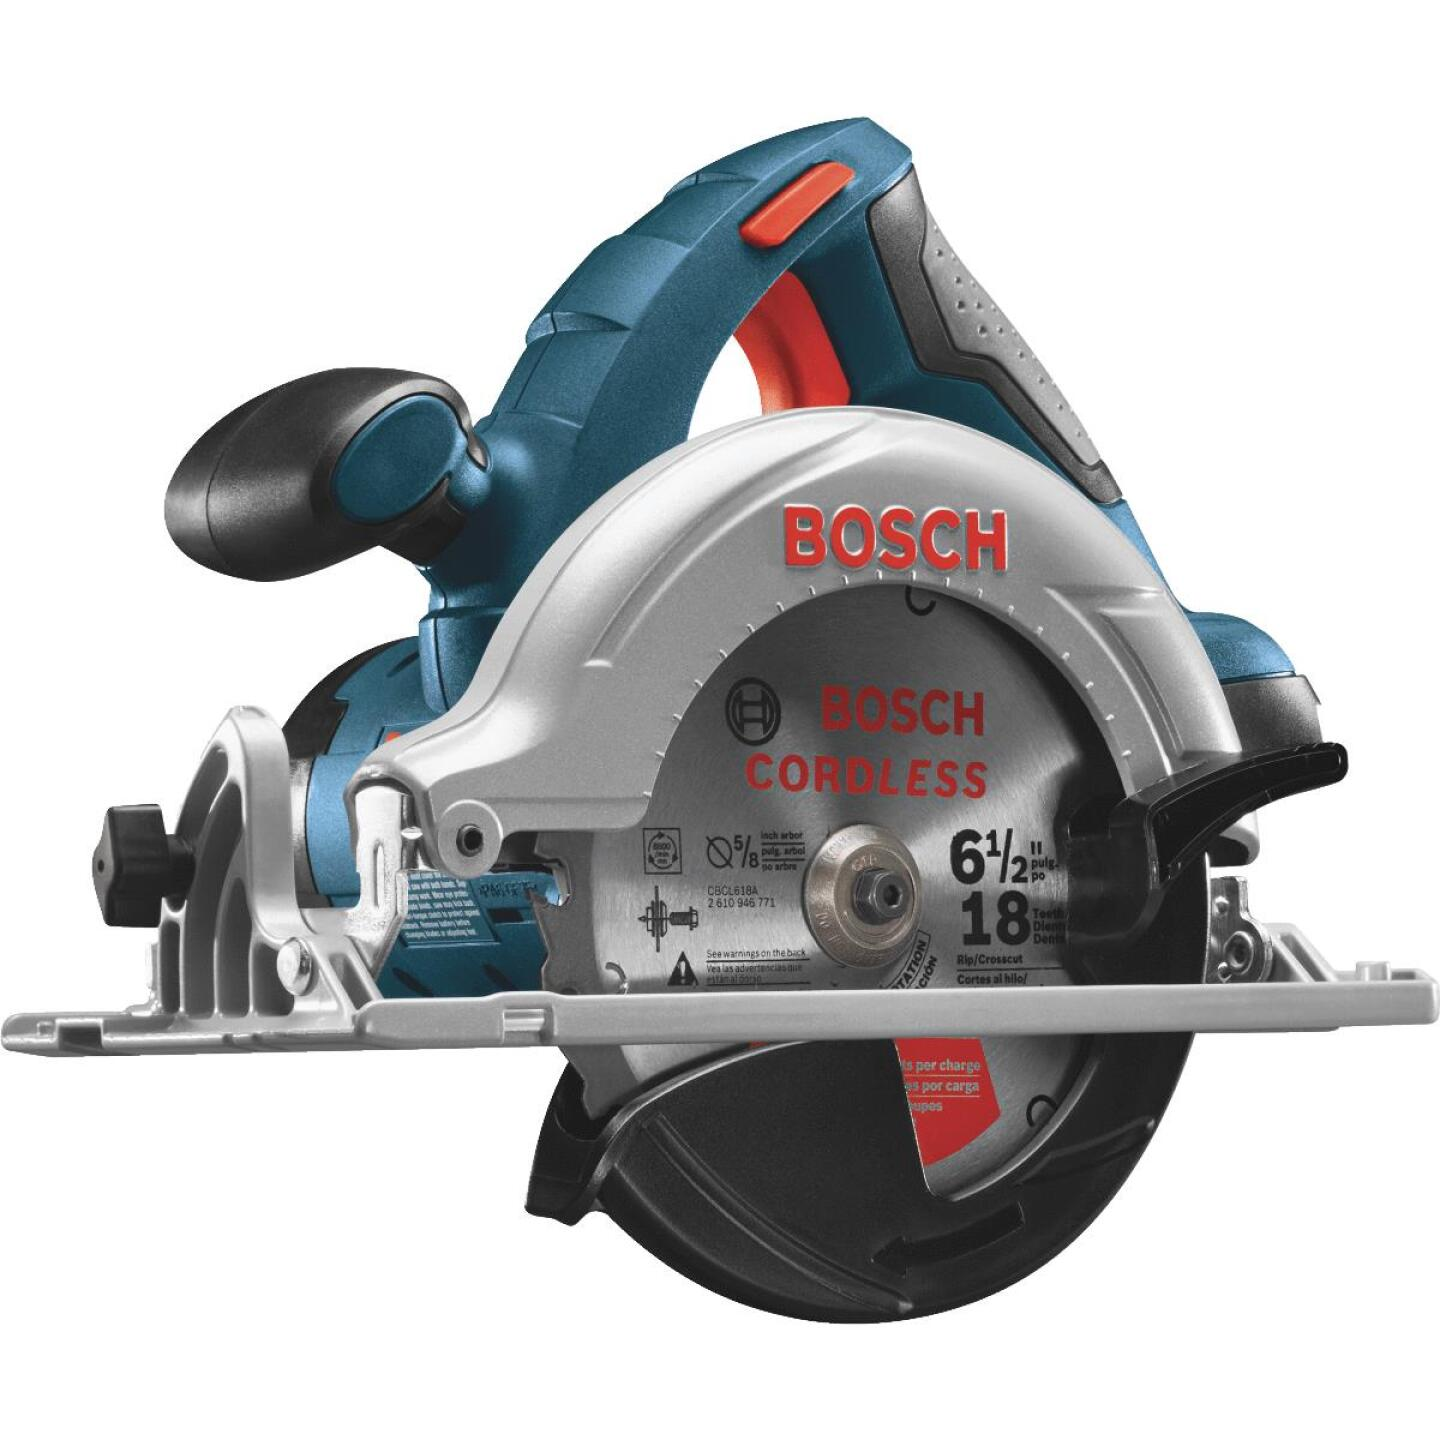 Bosch 18 Volt Lithium-Ion 6-1/2 In. Cordless Circular Saw (Bare Tool) Image 1